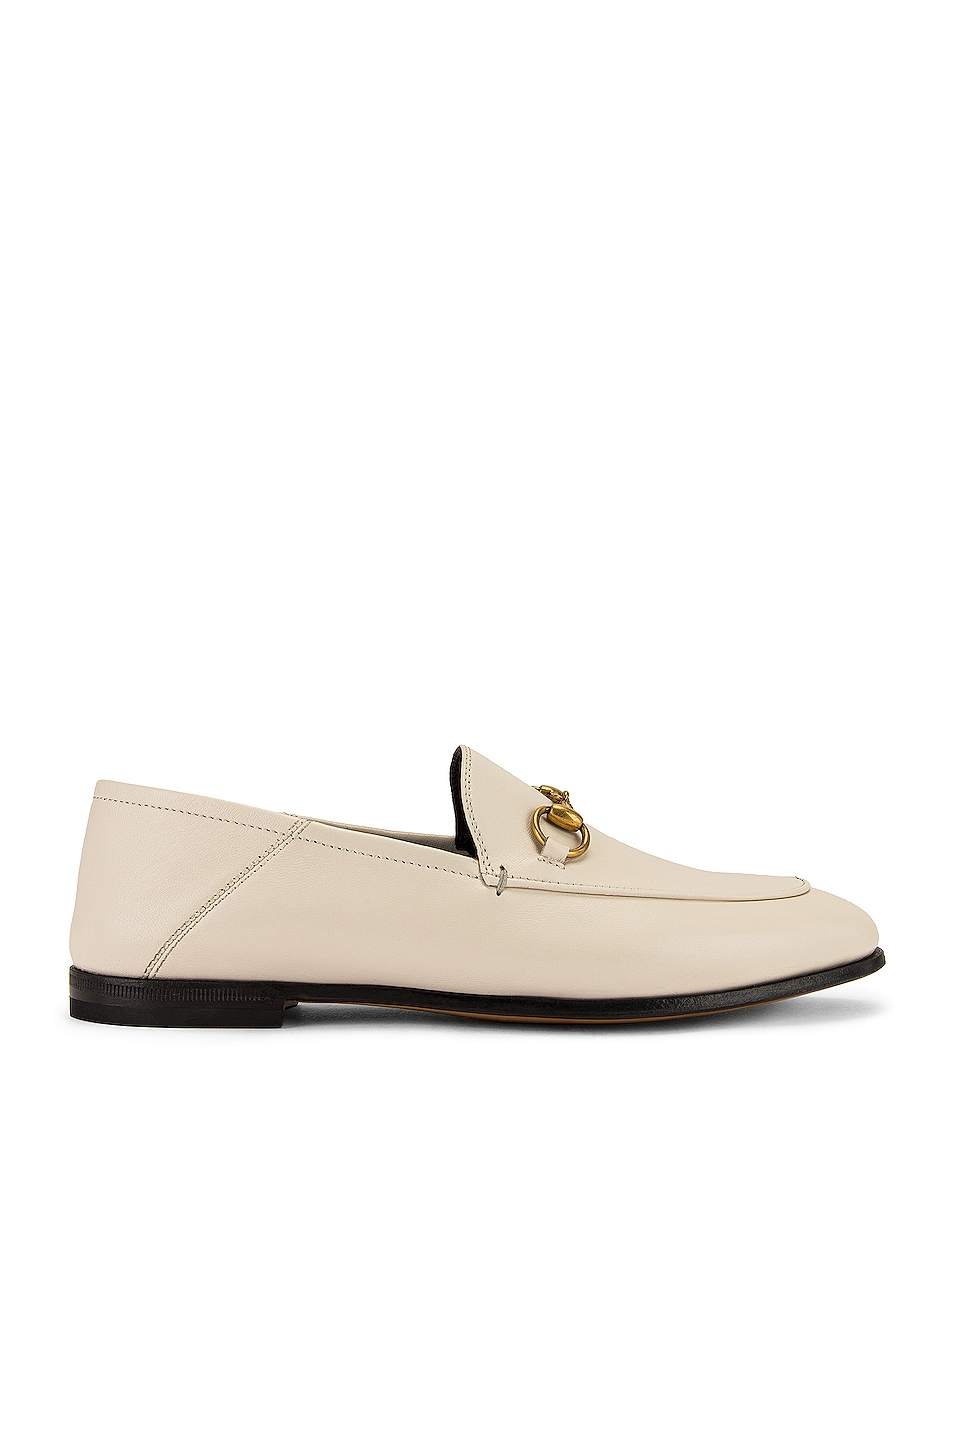 Image 2 of Gucci Leather Horsebit Loafers in Mystic White